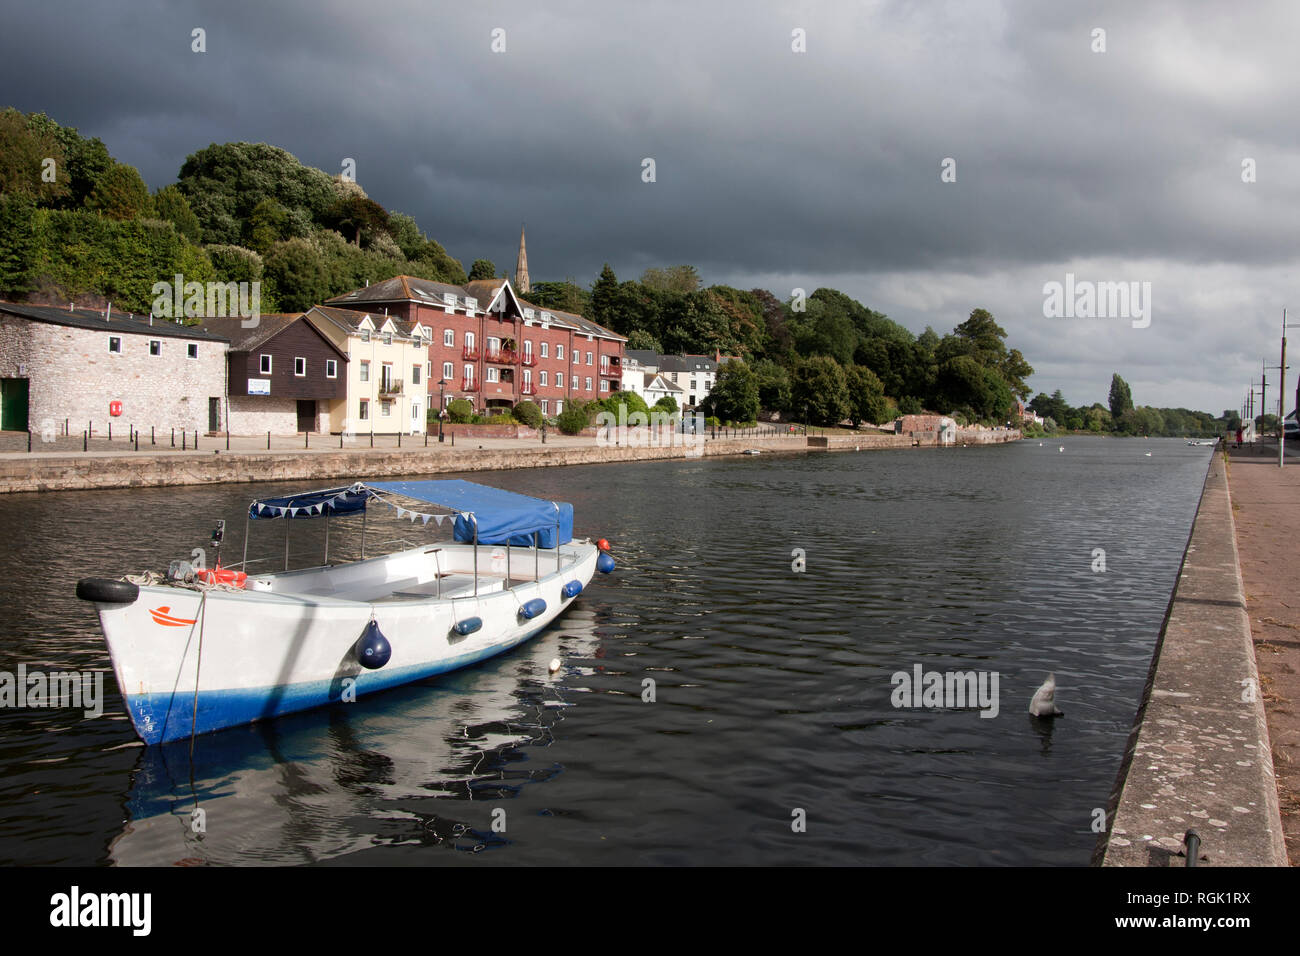 Exeter Quay and the Southern Comfort tour boat, River Exe, Exeter, Devon - Stock Image